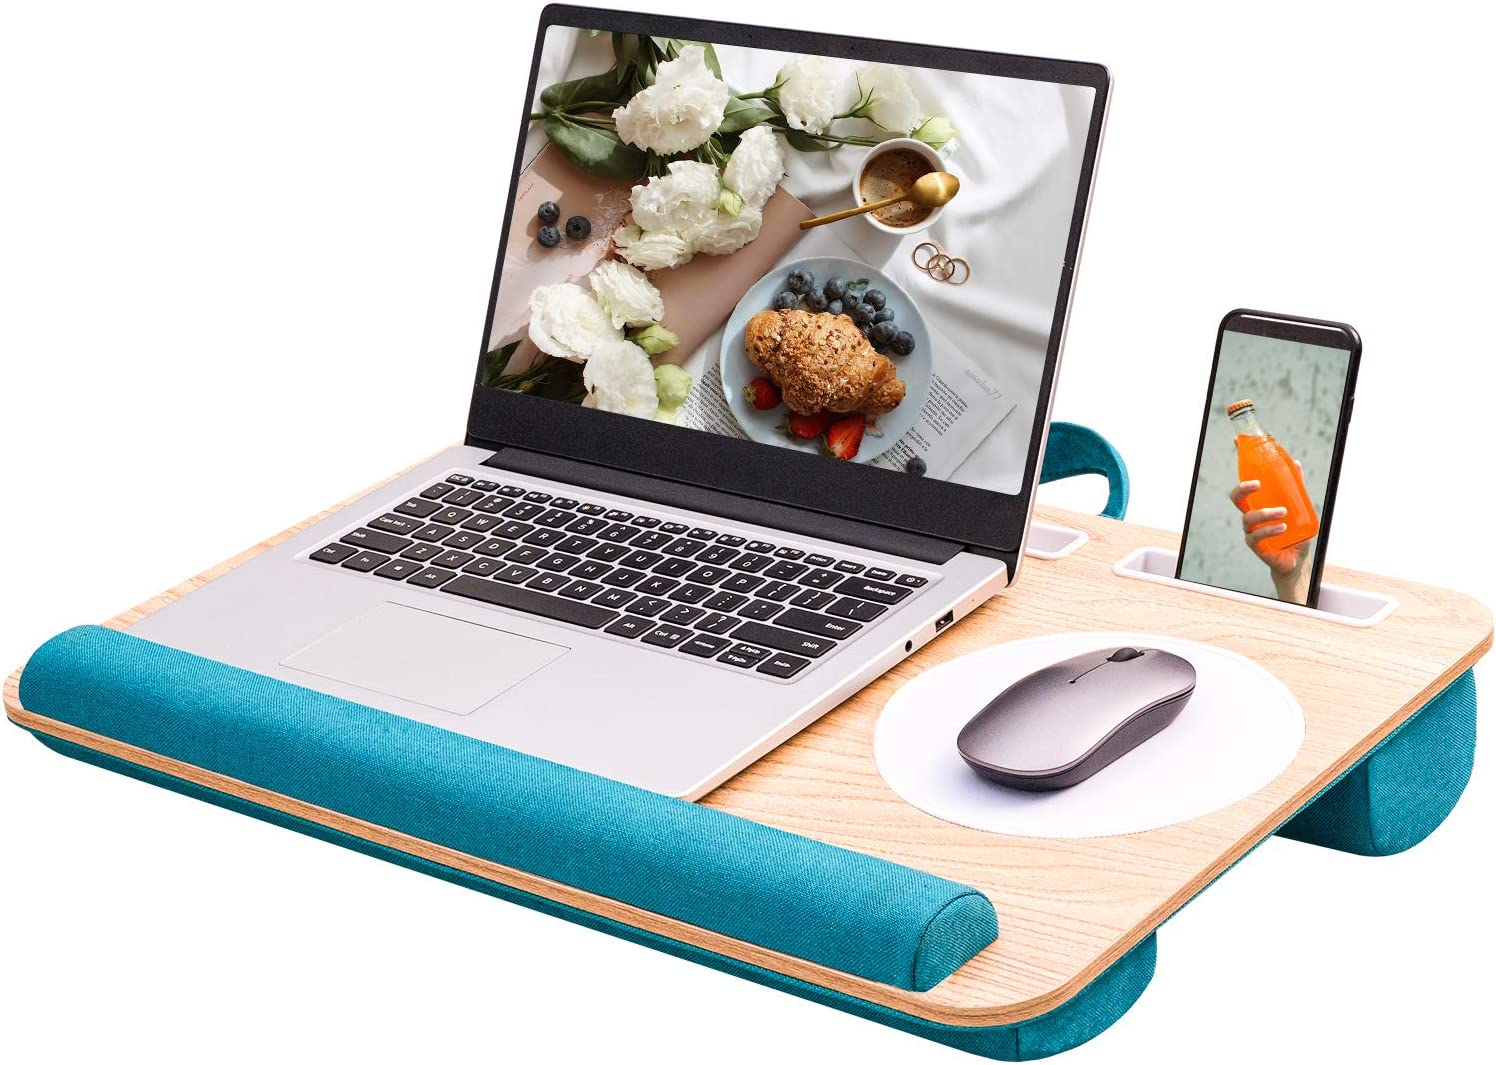 Rentliv Home Office Lap Desk - Fits up to 17 Inch Laptop Desk, Built-in Mouse Pad &Wrist Pad for Notebook, MacBook, Laptop Stand with Tablet, Pen & Phone Holder -Green